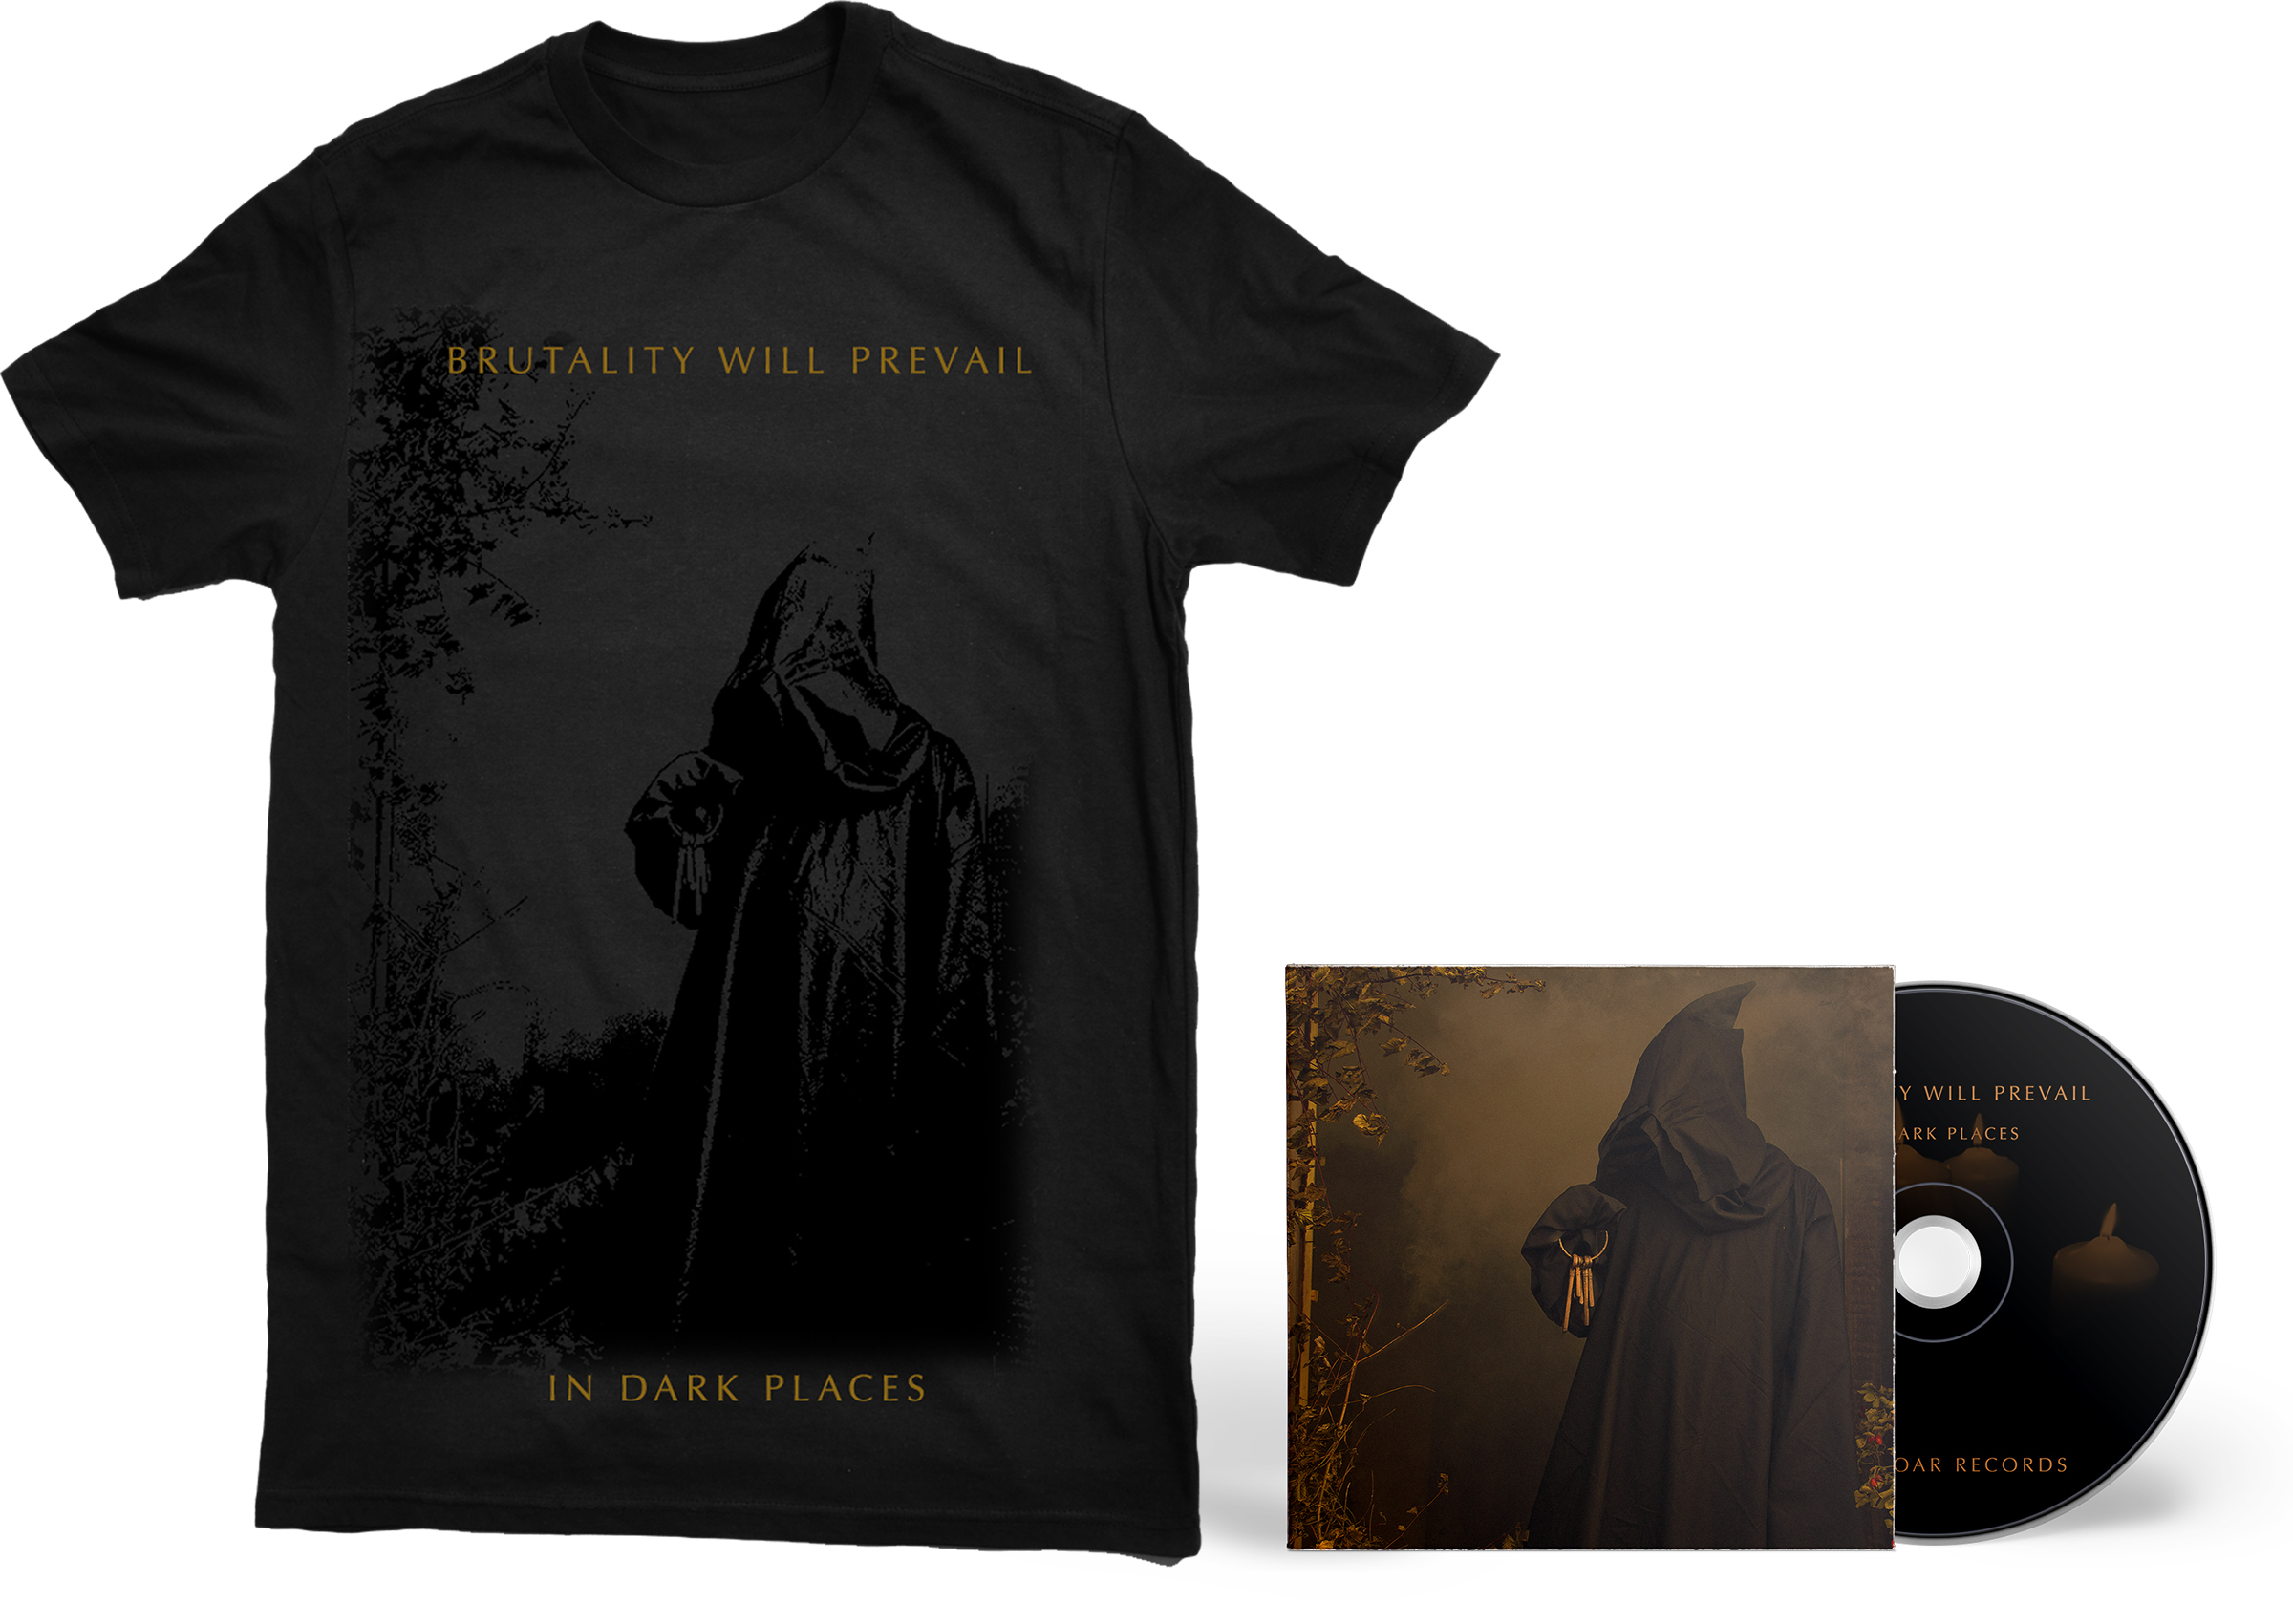 Brutality Will Prevail - In Dark Places shirt + CD